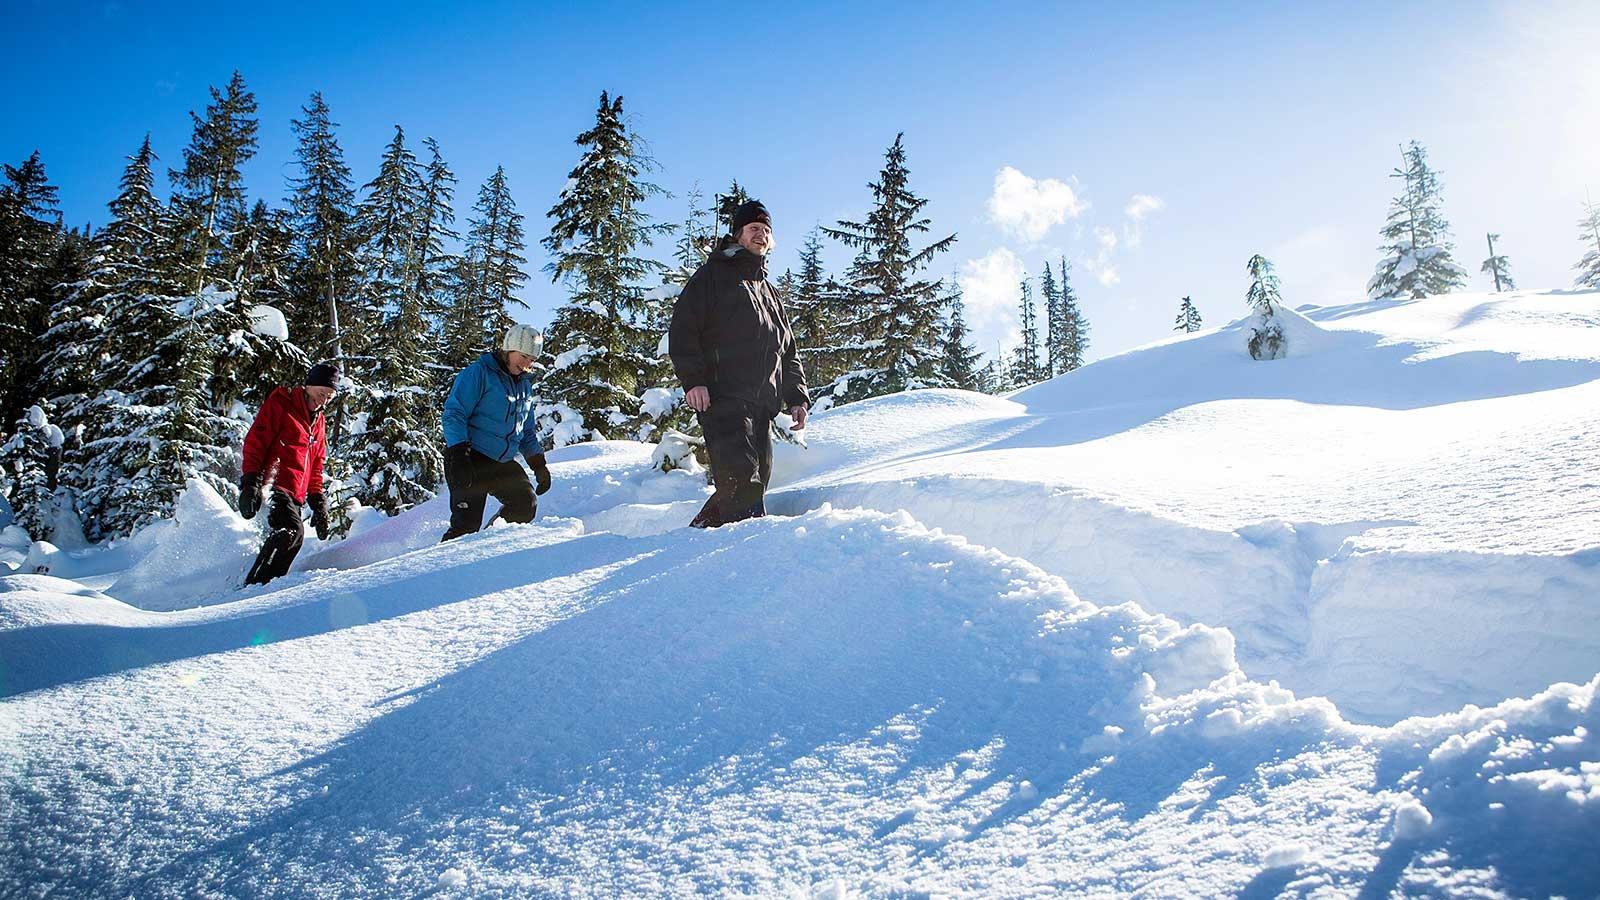 3 people snowshoeing through a sunny winter landscape with trees covered with snow in Whistler